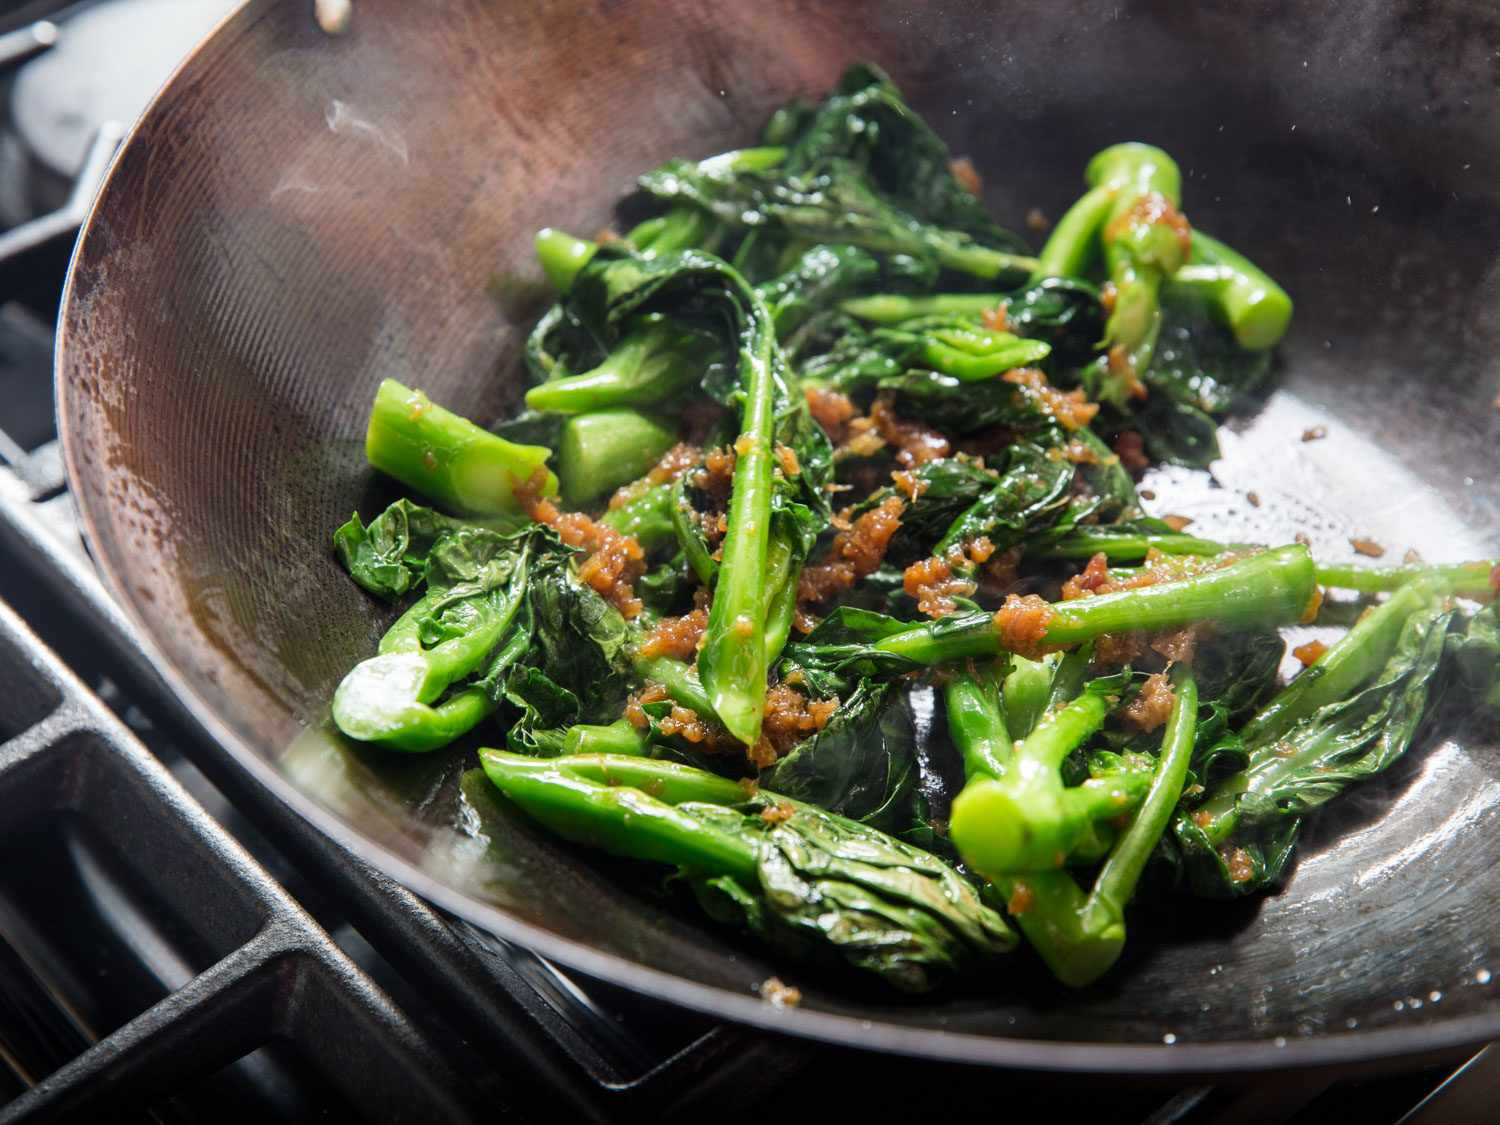 Stir-frying Chinese broccoli with XO sauce.